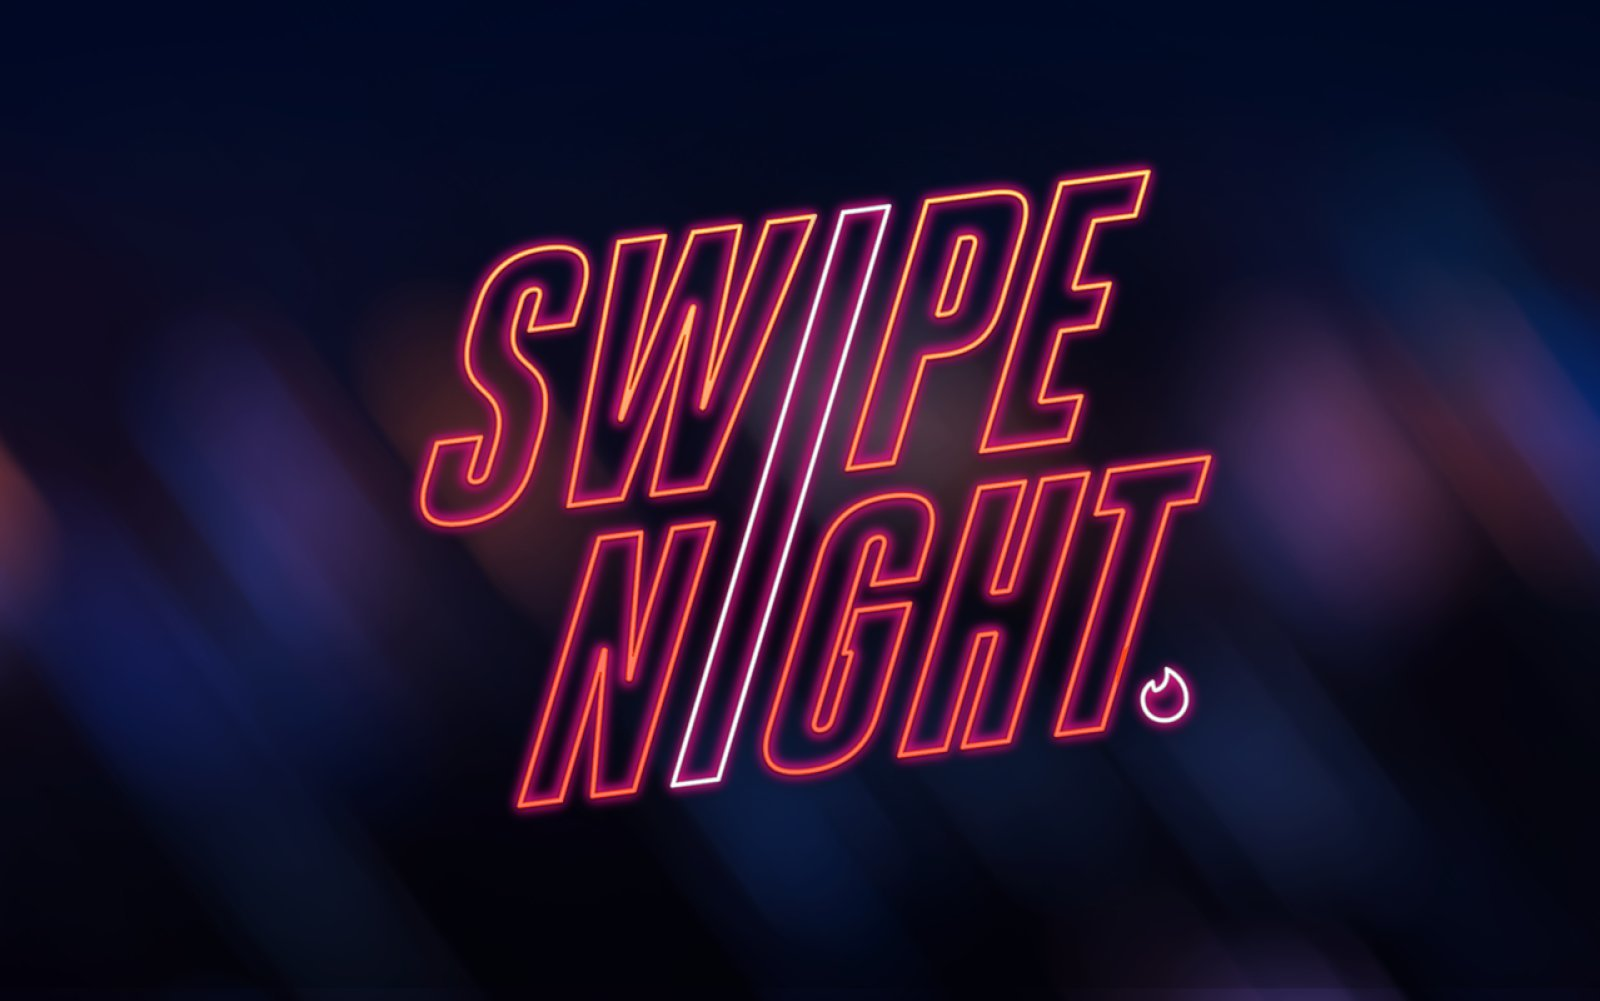 Swipe Night: série interativa do Tinder é renovada para 2ª temporada